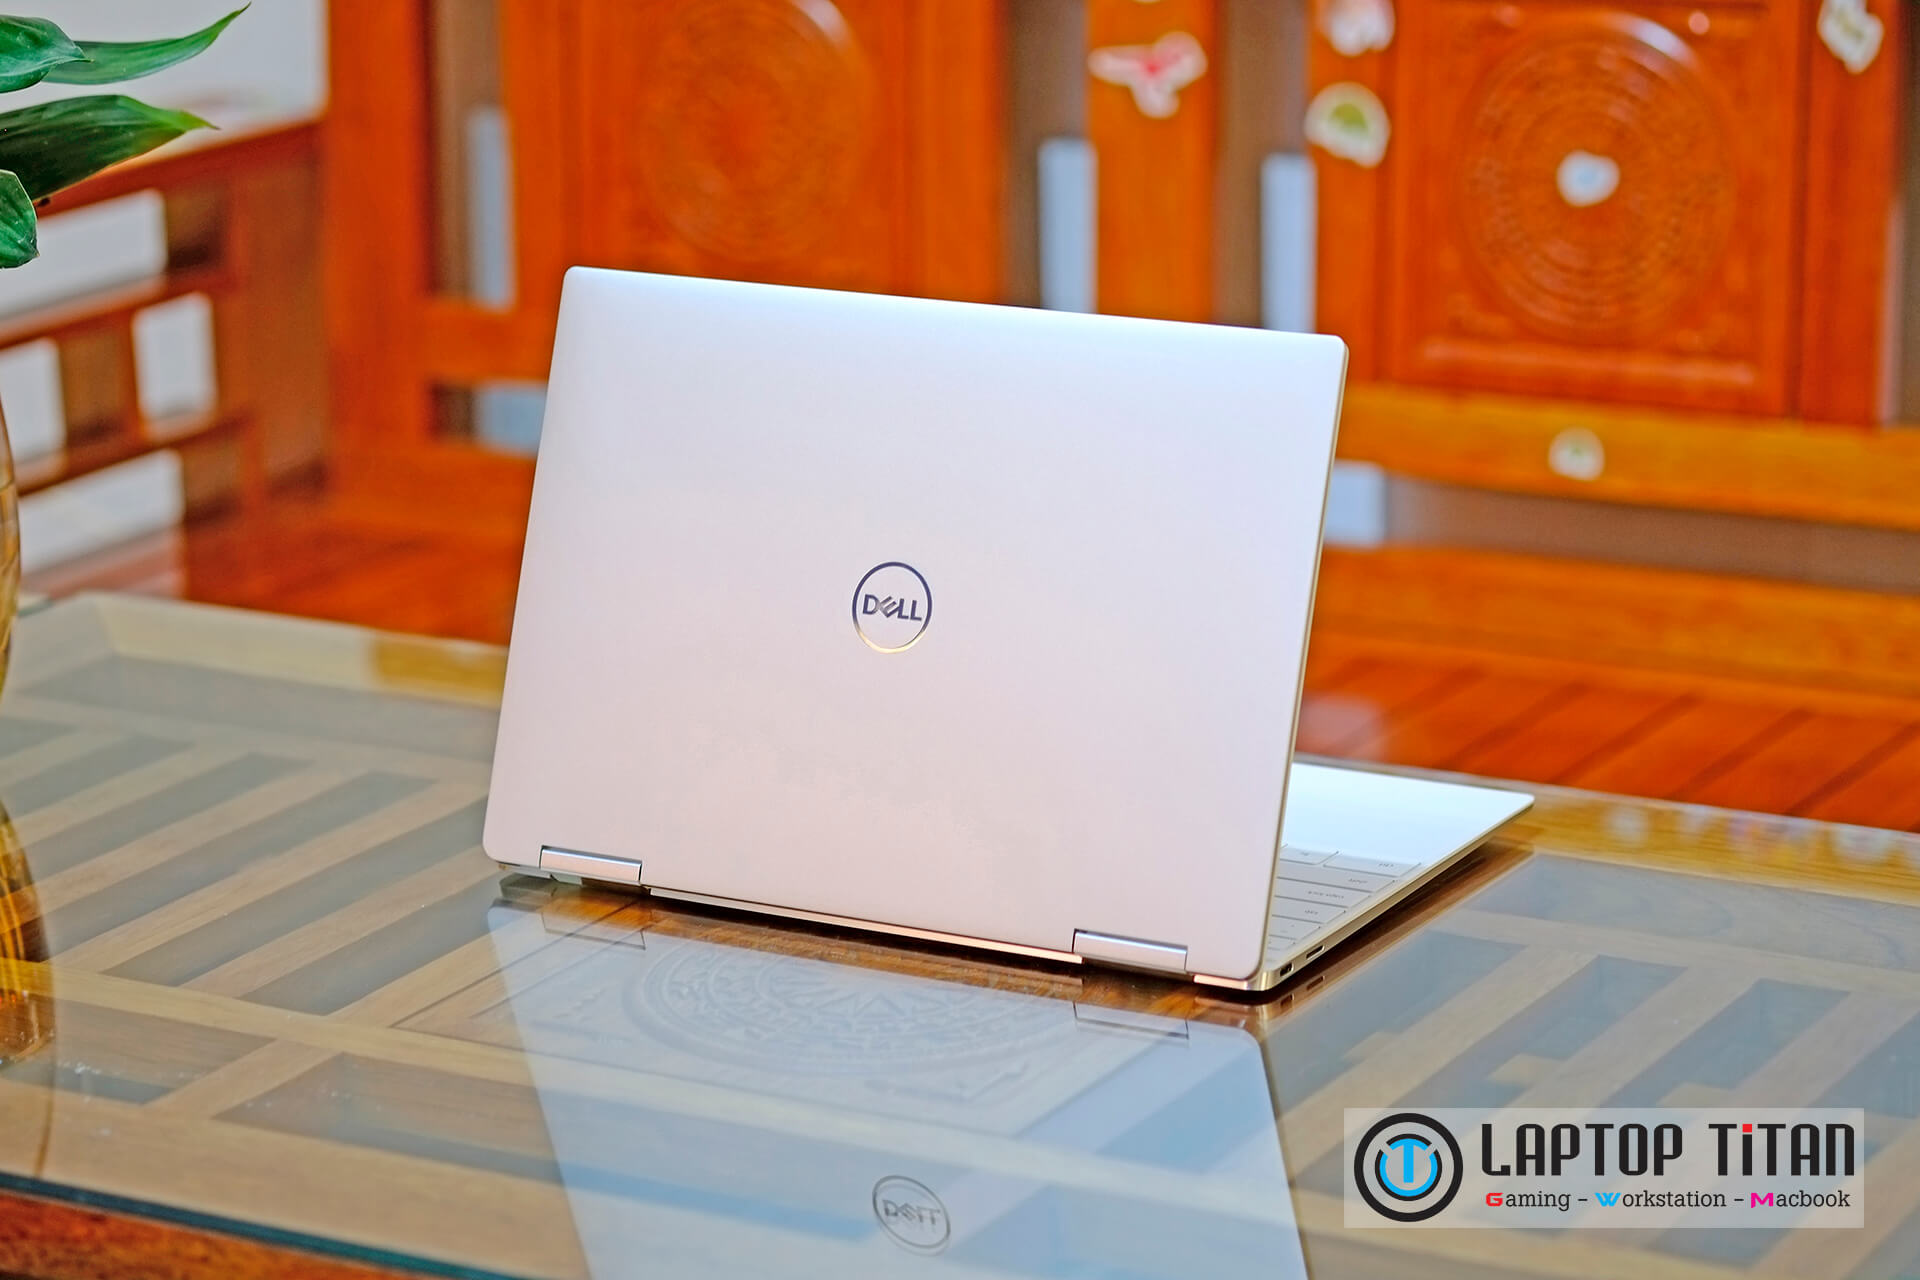 Dell Xps 13 7390 2-in-1 i7-1065G7 / 16GB / 512GB / FHD Touch / Likenew 99,9% 15812490_Dell-Xps-7390-2-in-1-007